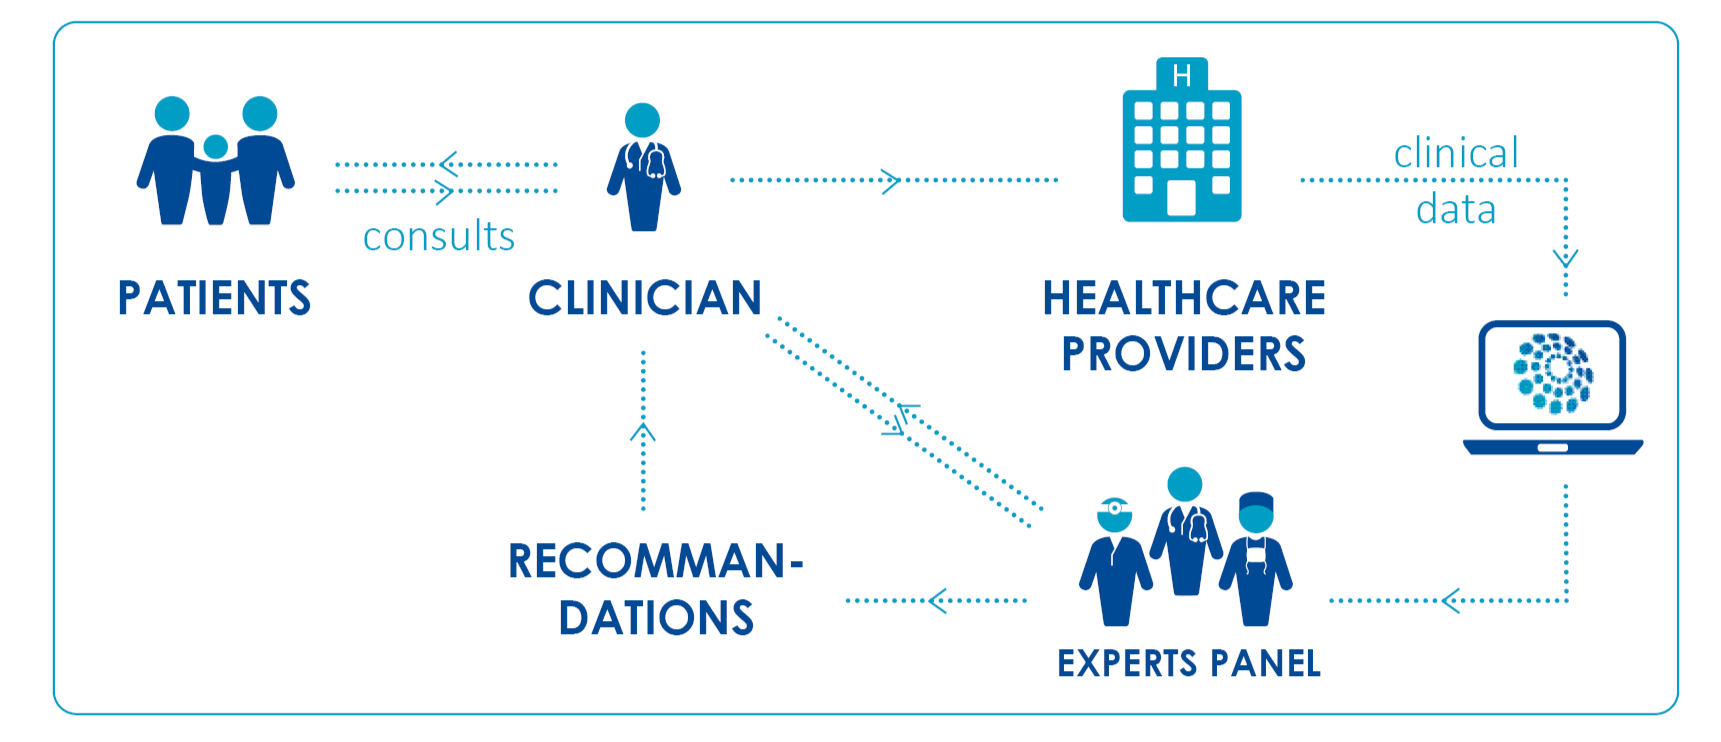 The Network main aim is the development of a virtual clinic to facilitate cross-border dissemination of expertise.